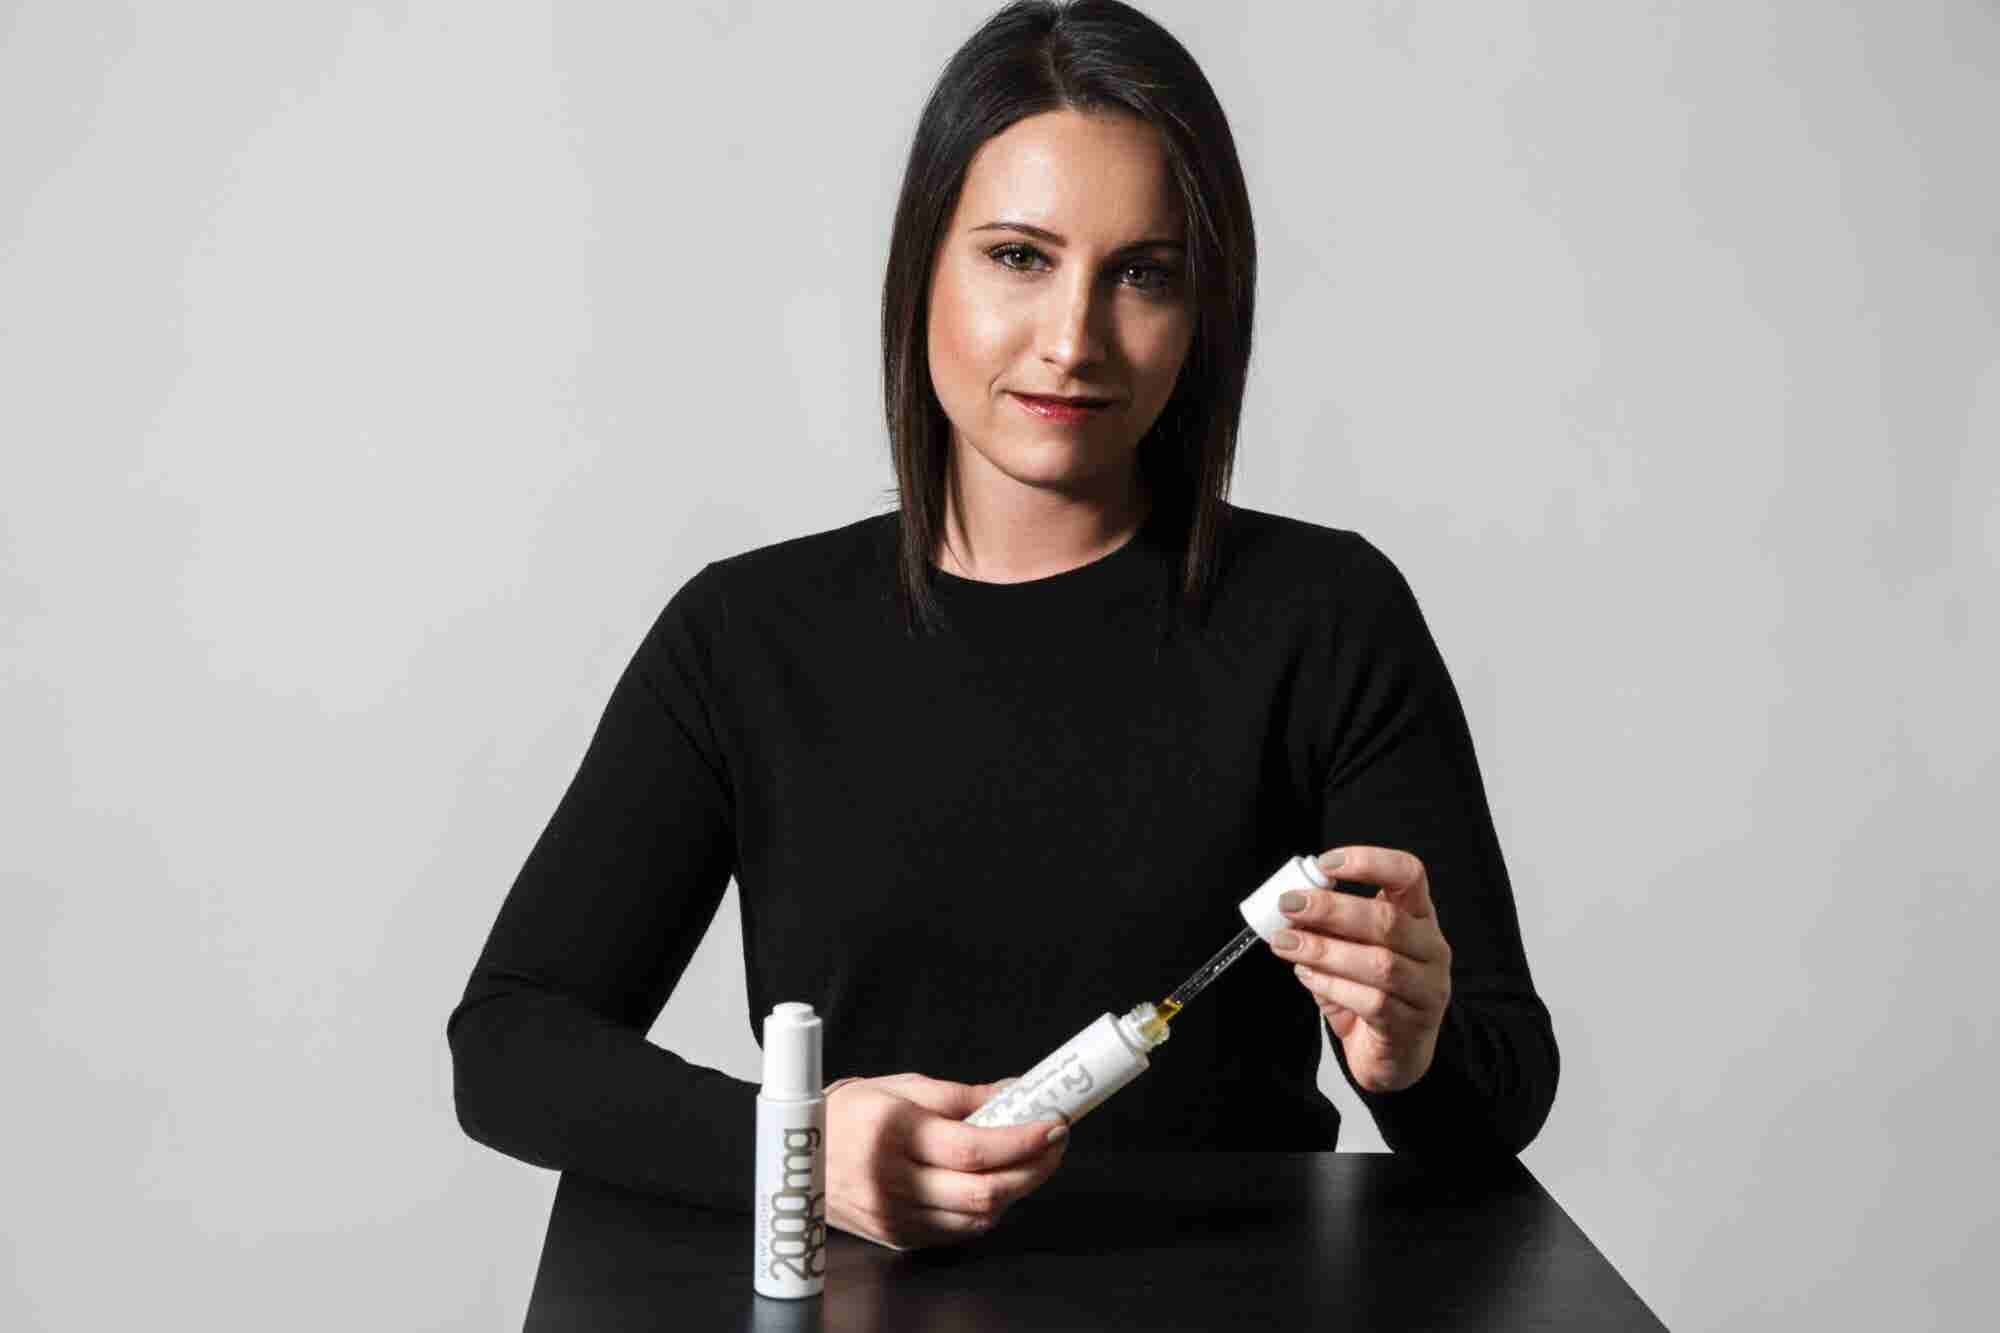 This Entrepreneur Brought Her Experience With Luxury Clients Into Cannabis